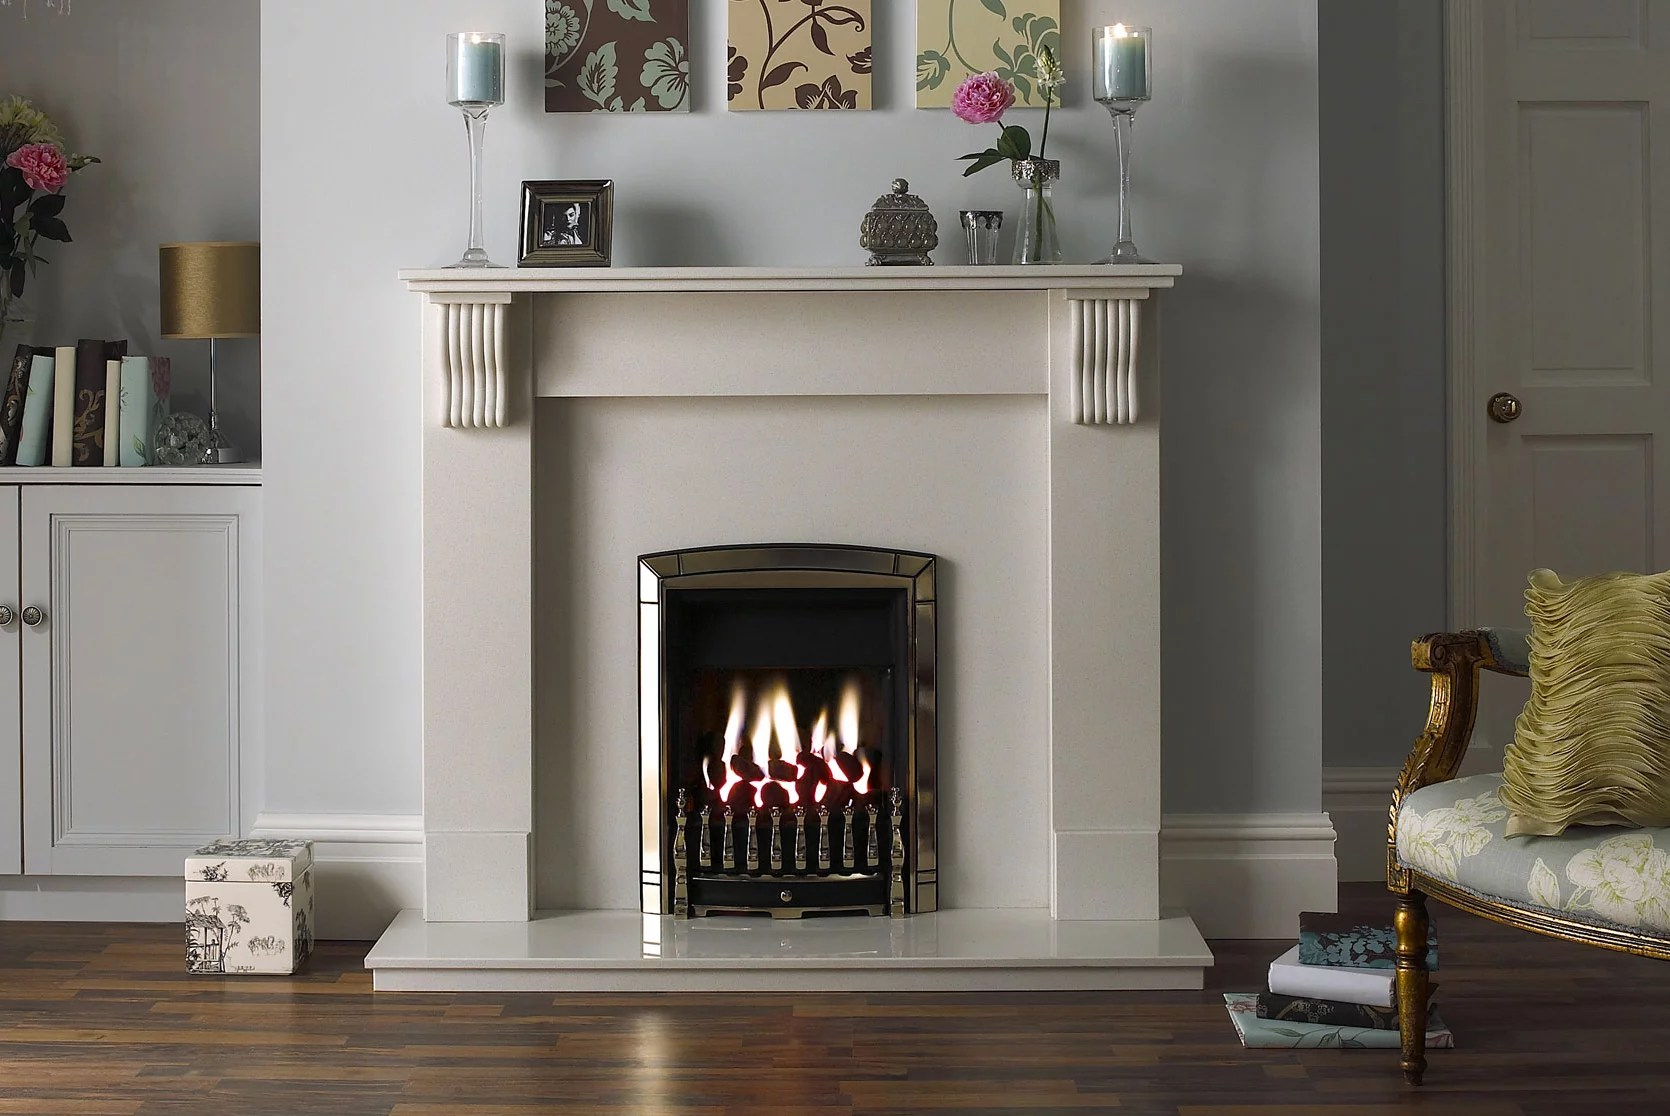 Fires Amp Surrounds Buying Guide Ideas Amp Advice DIY At BampQ